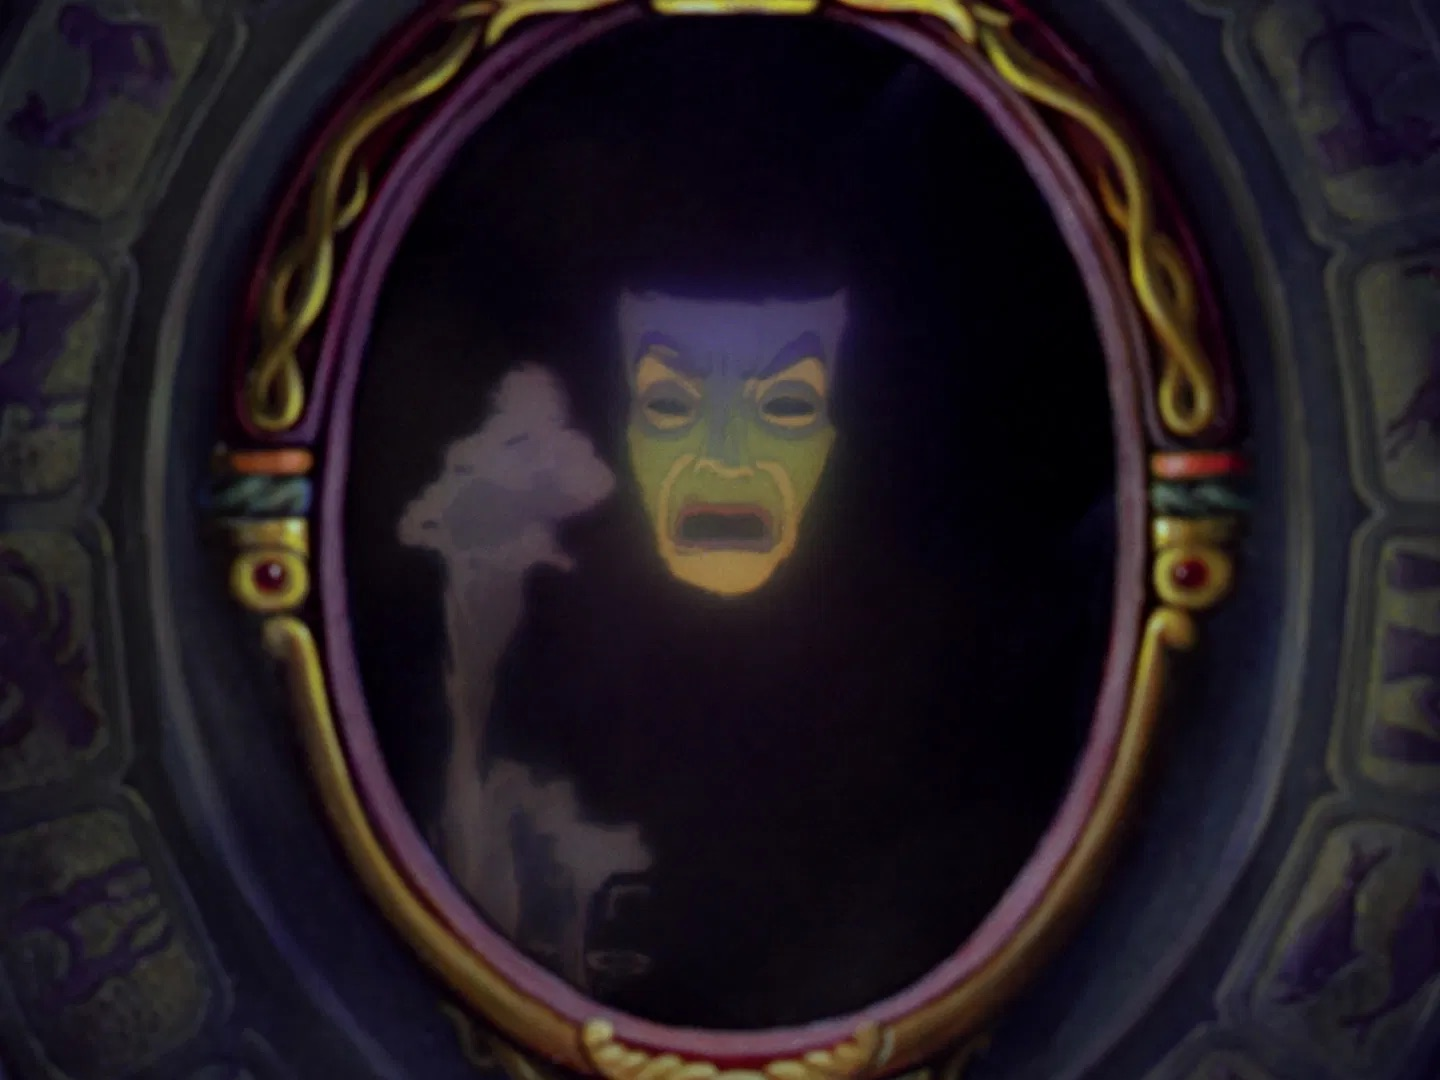 Magic mirror disney wiki fandom powered by wikia for Miroir miroir blanche neige